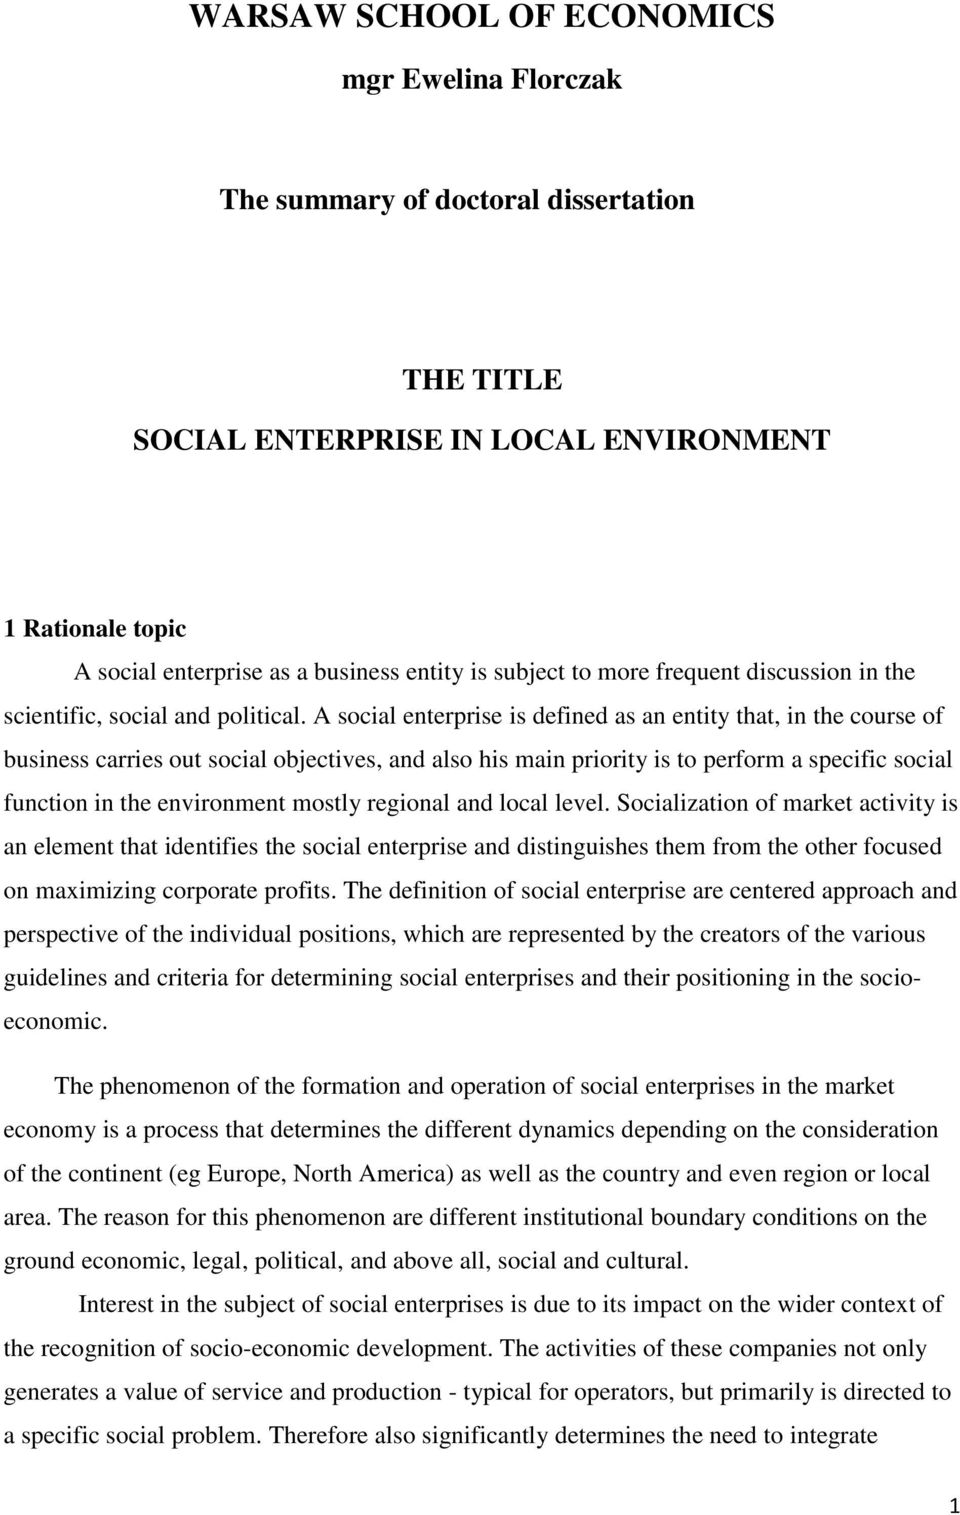 A social enterprise is defined as an entity that, in the course of business carries out social objectives, and also his main priority is to perform a specific social function in the environment